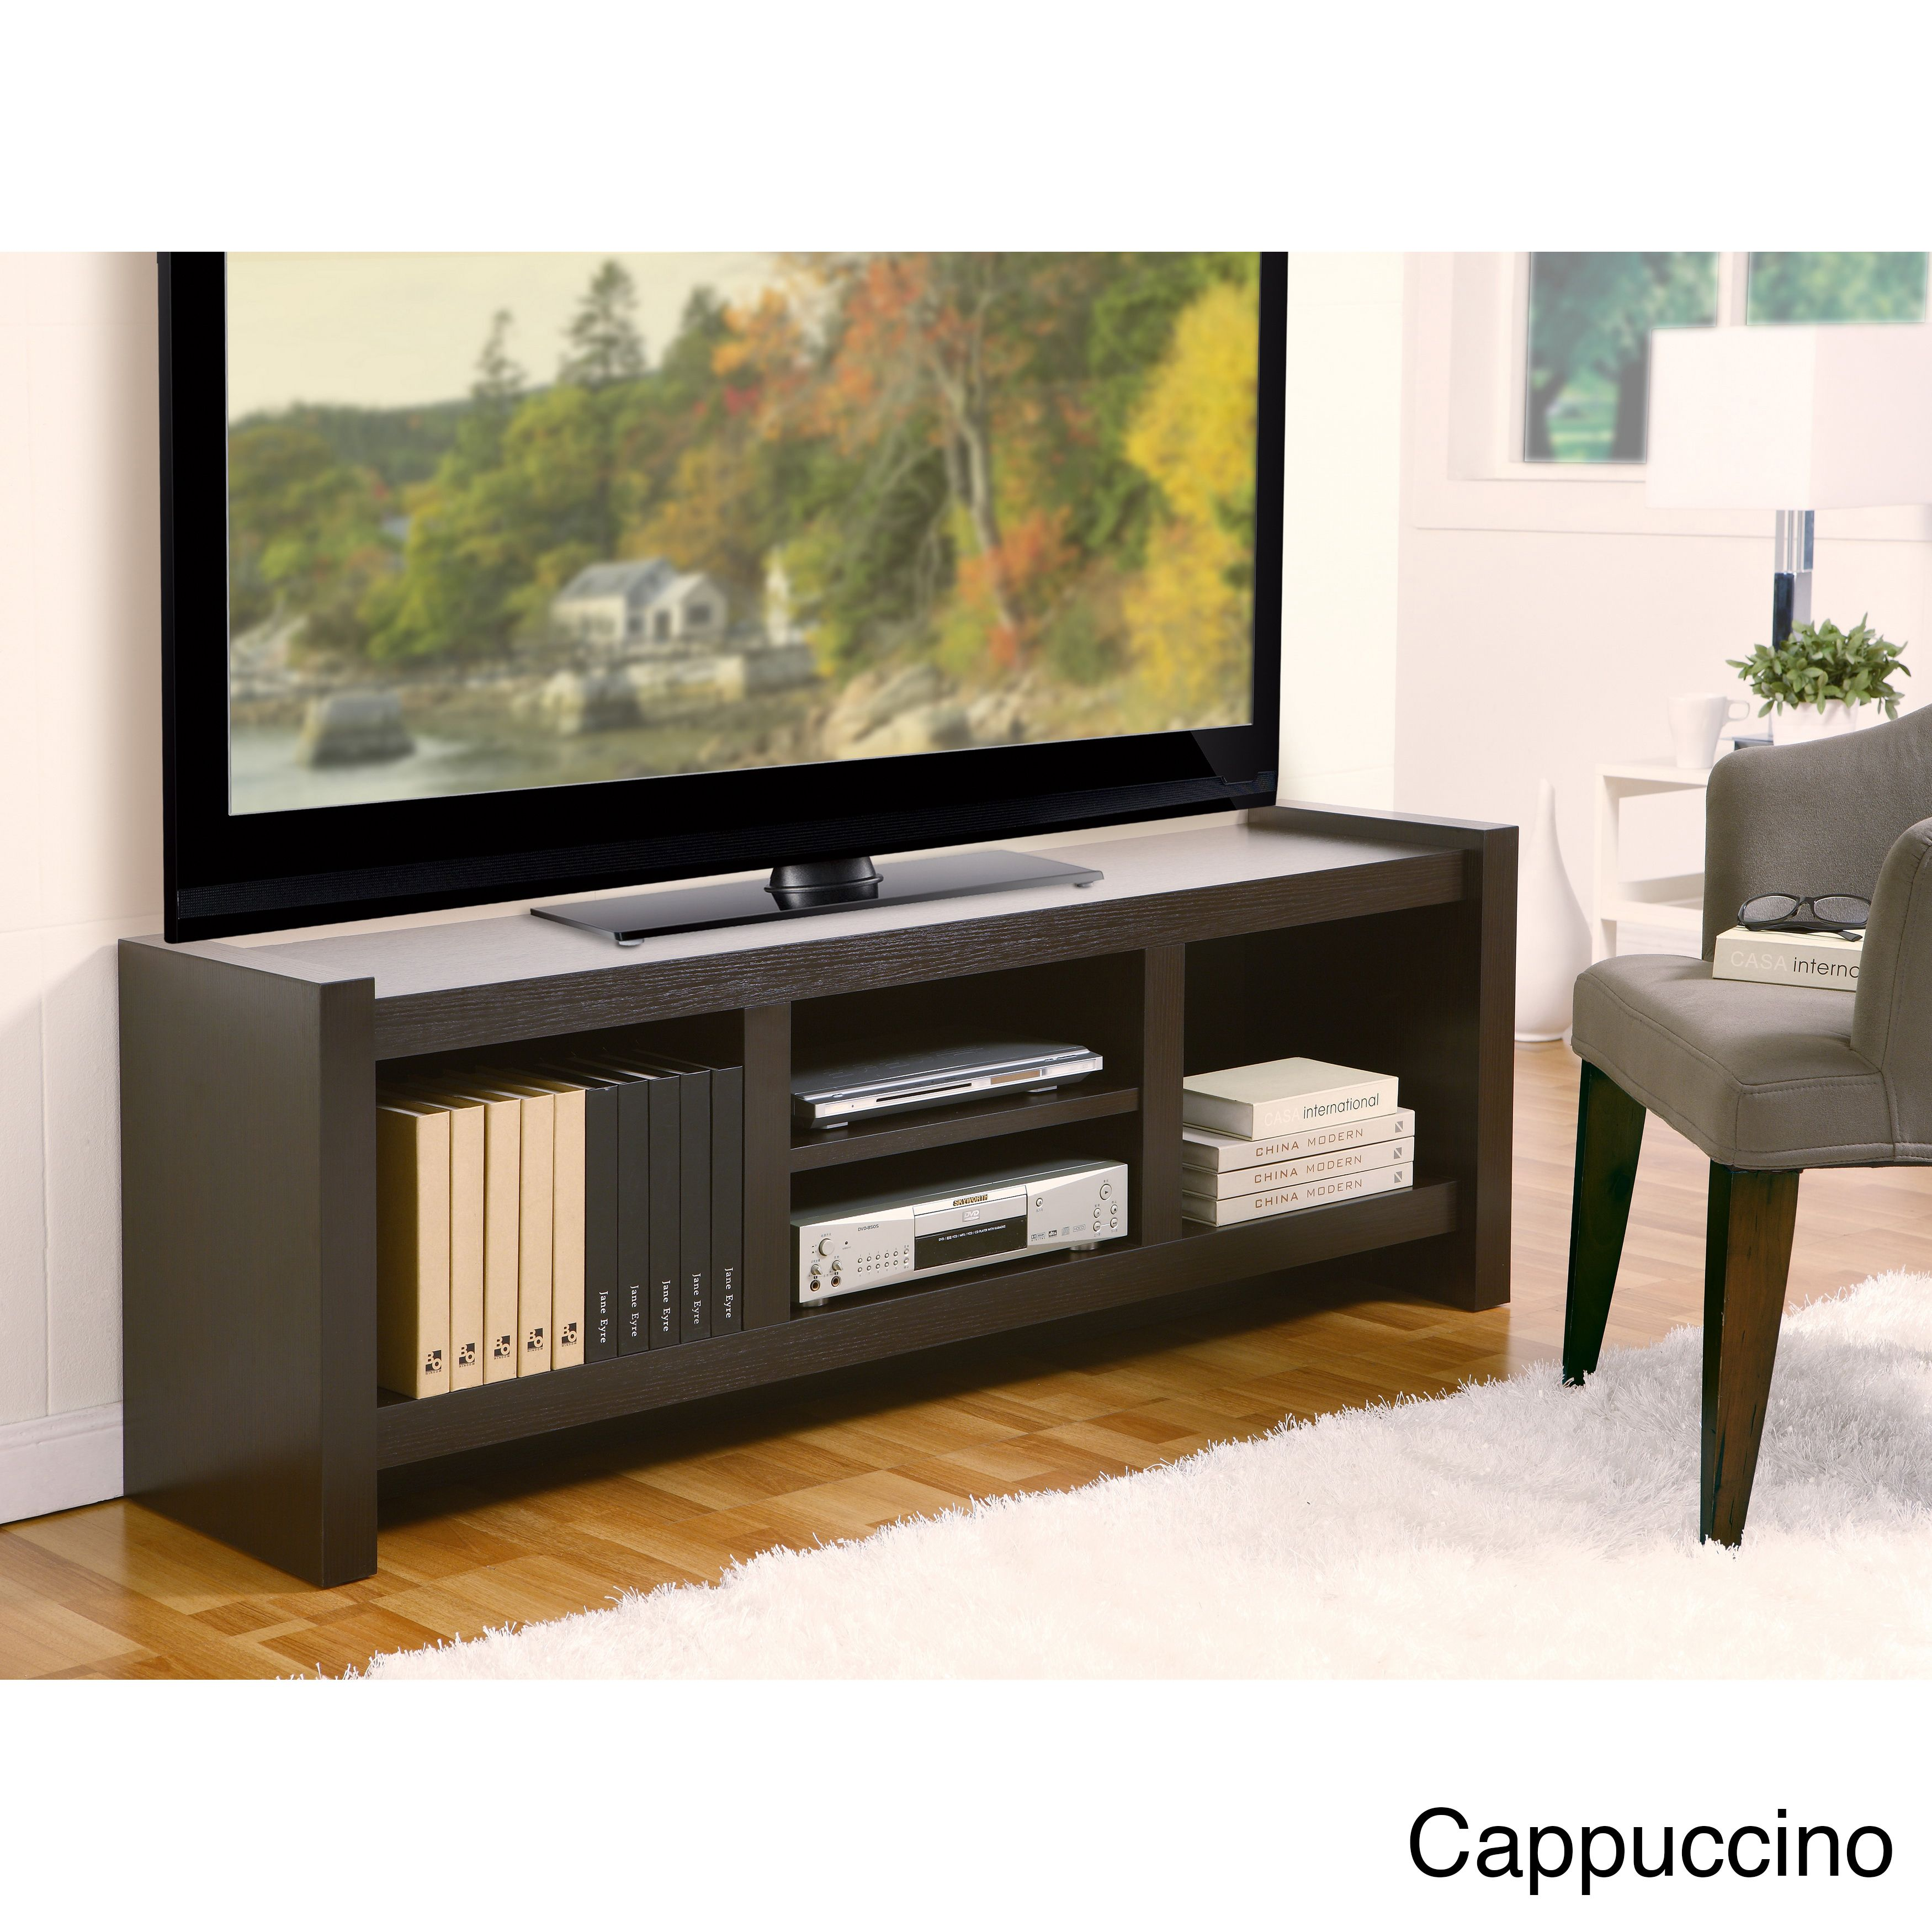 Keep Your Games, Movies, And Other Appliances Secure In This Large TV Stand  With Storage. It Has Four Storage Spaces That Allow You To Organize Your ...